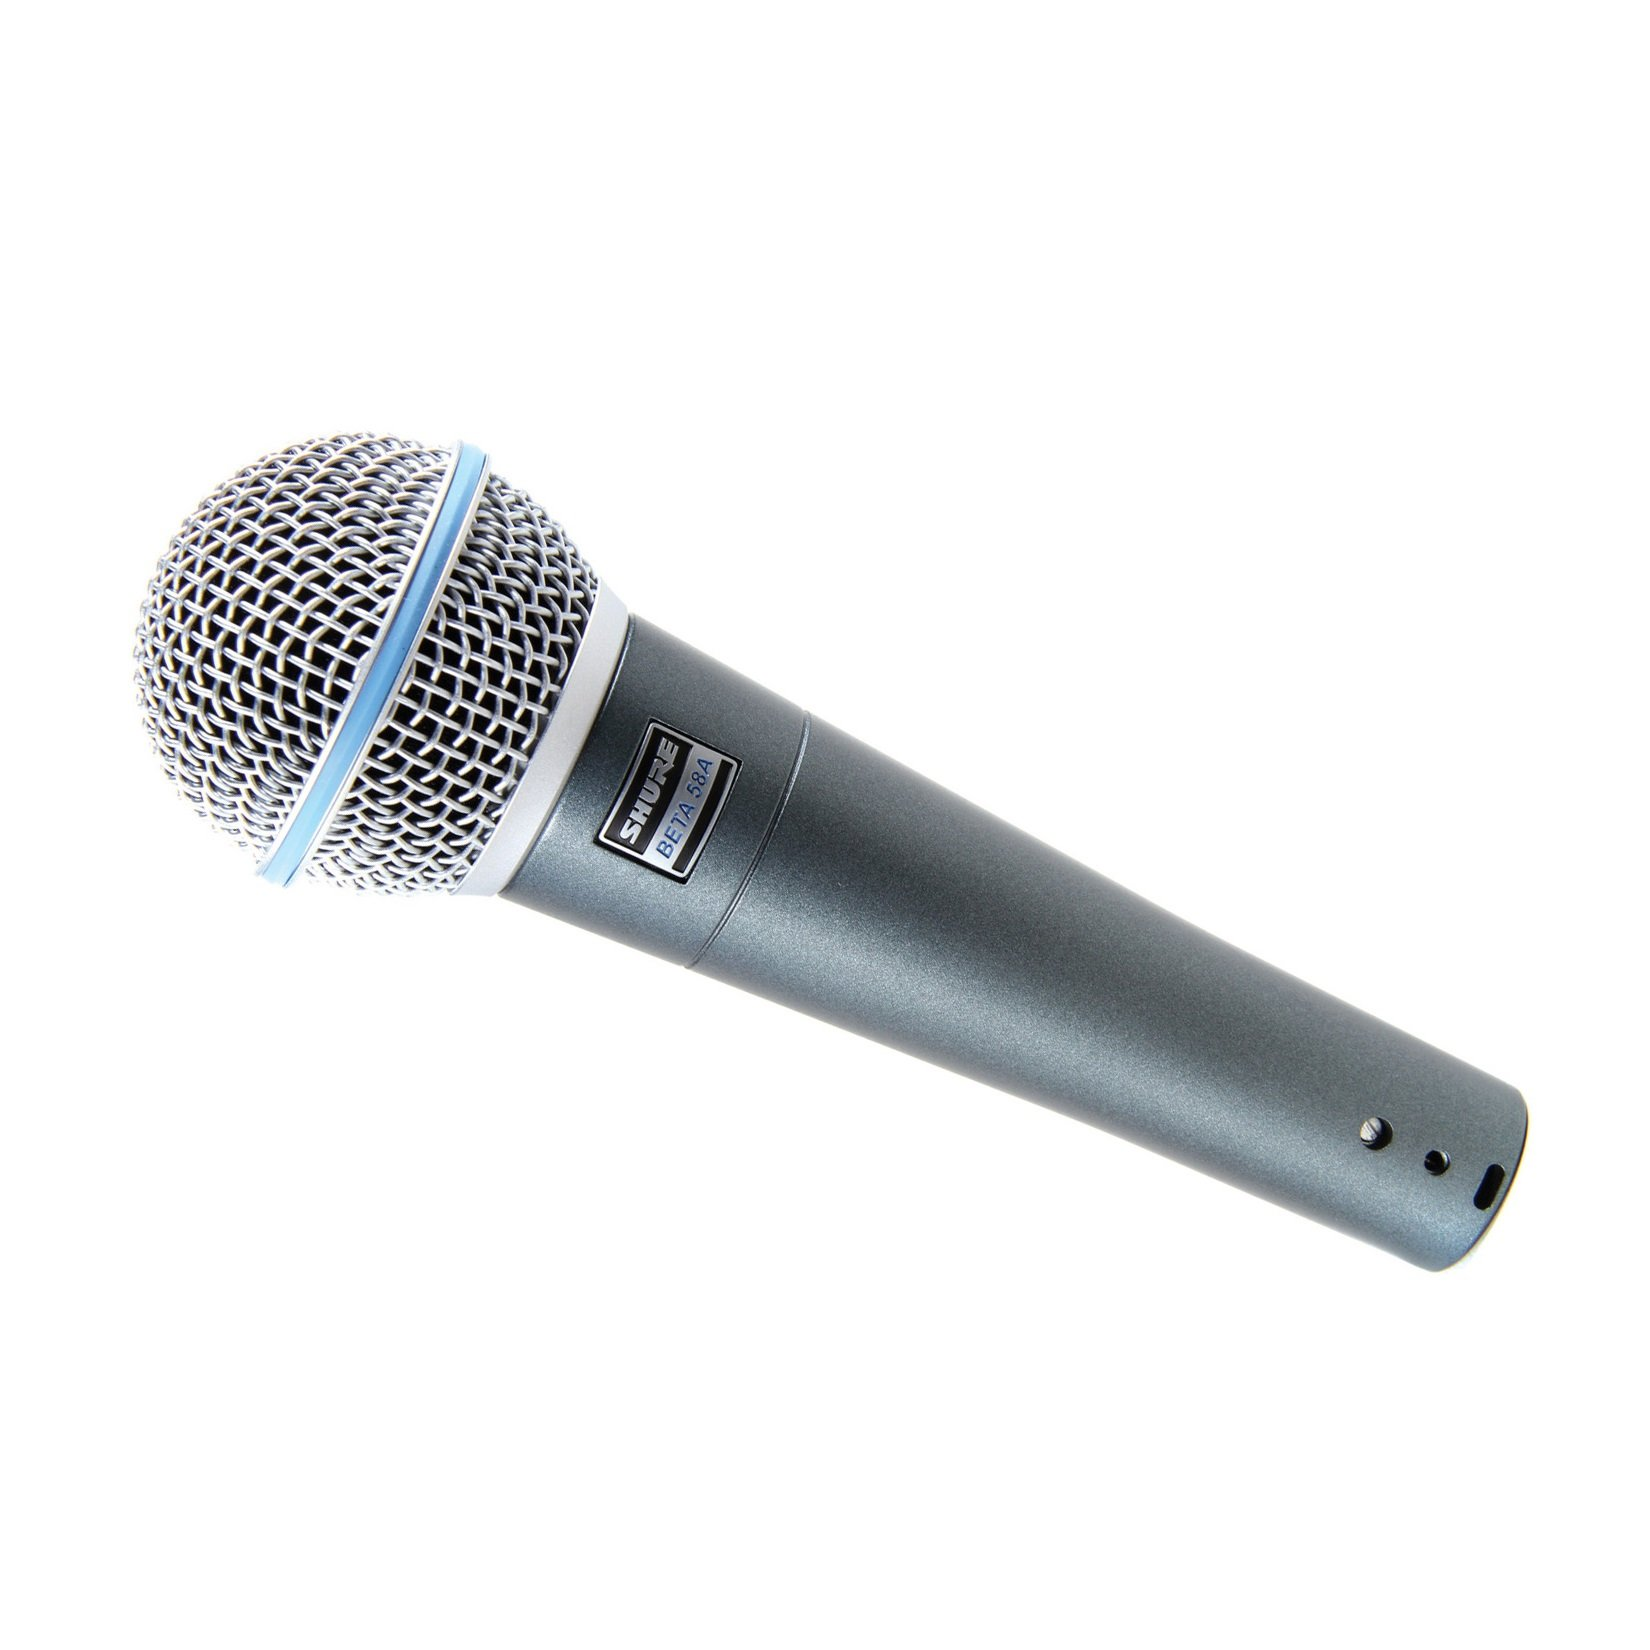 New Shure | High-Performance Supercardioid Dynamic Vocal Microphone BETA 58A with Built-In Spherical Wind & Pop Filter and Stand Clamp